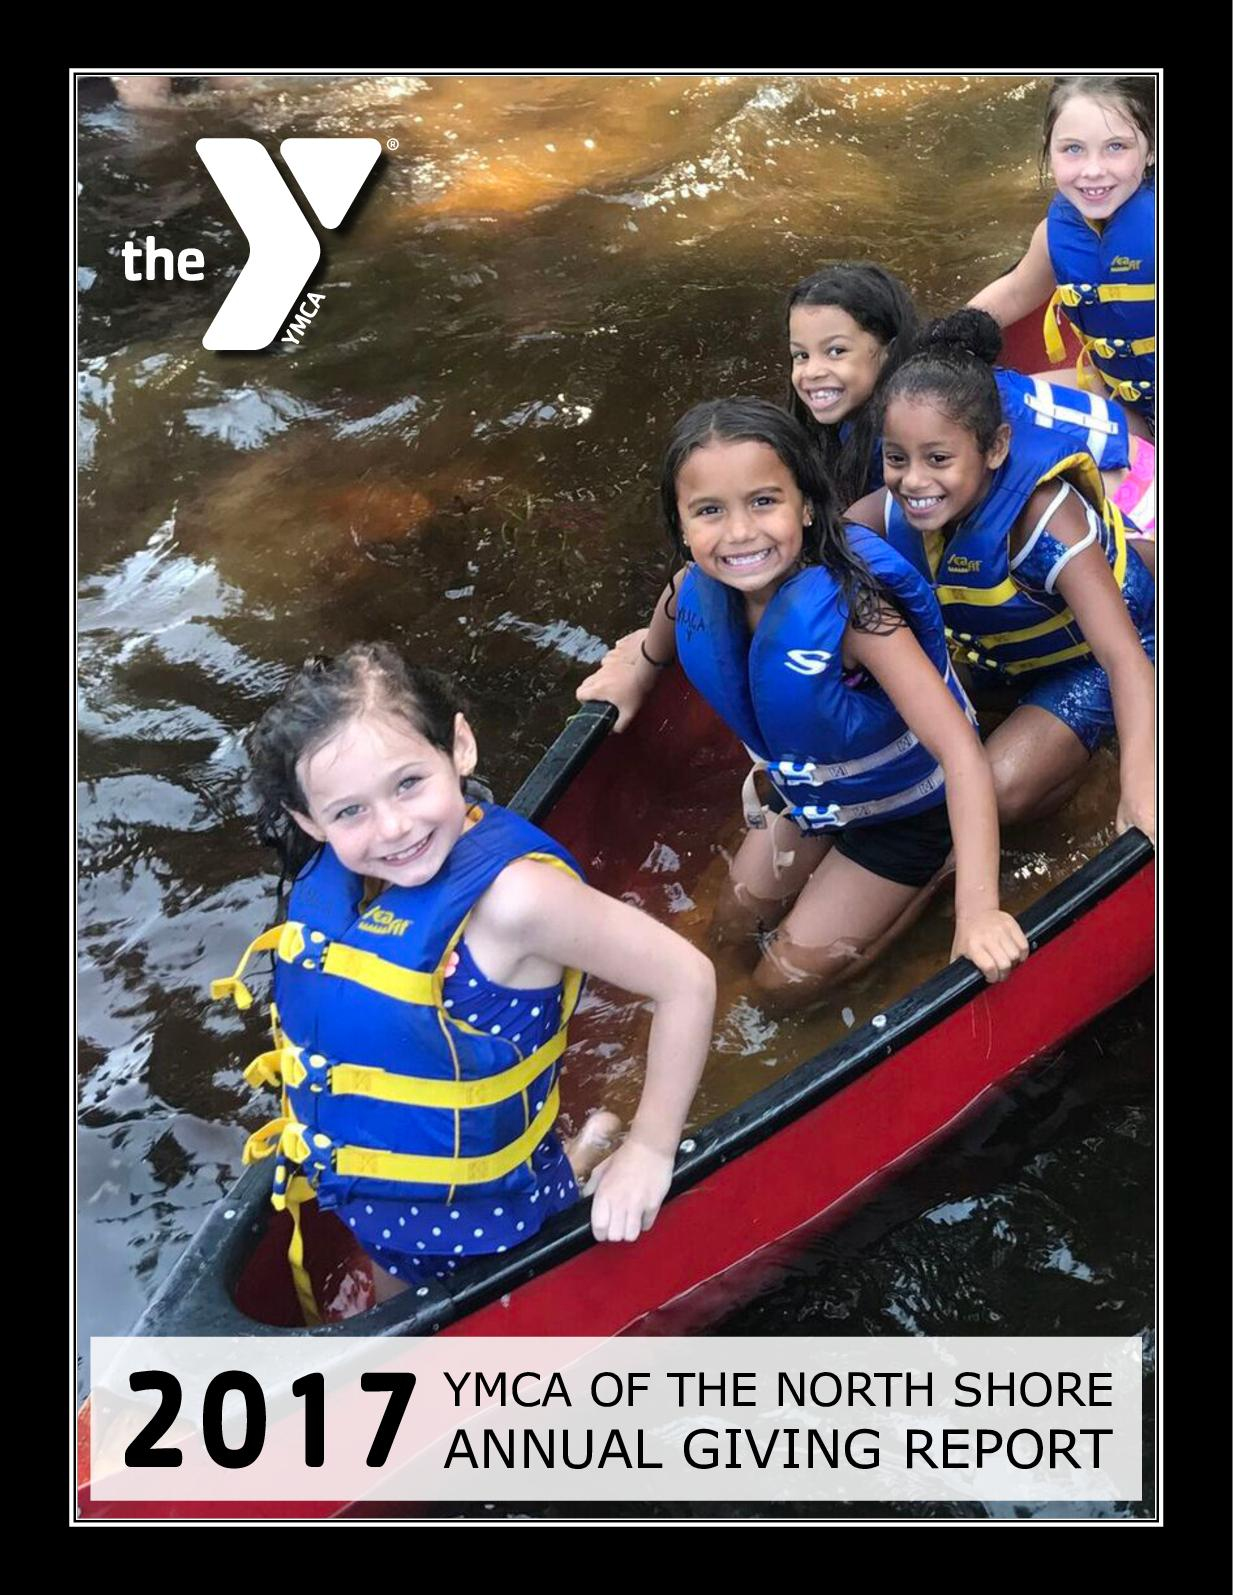 Calaméo - YMCA of the North Shore 2017 Annual Report